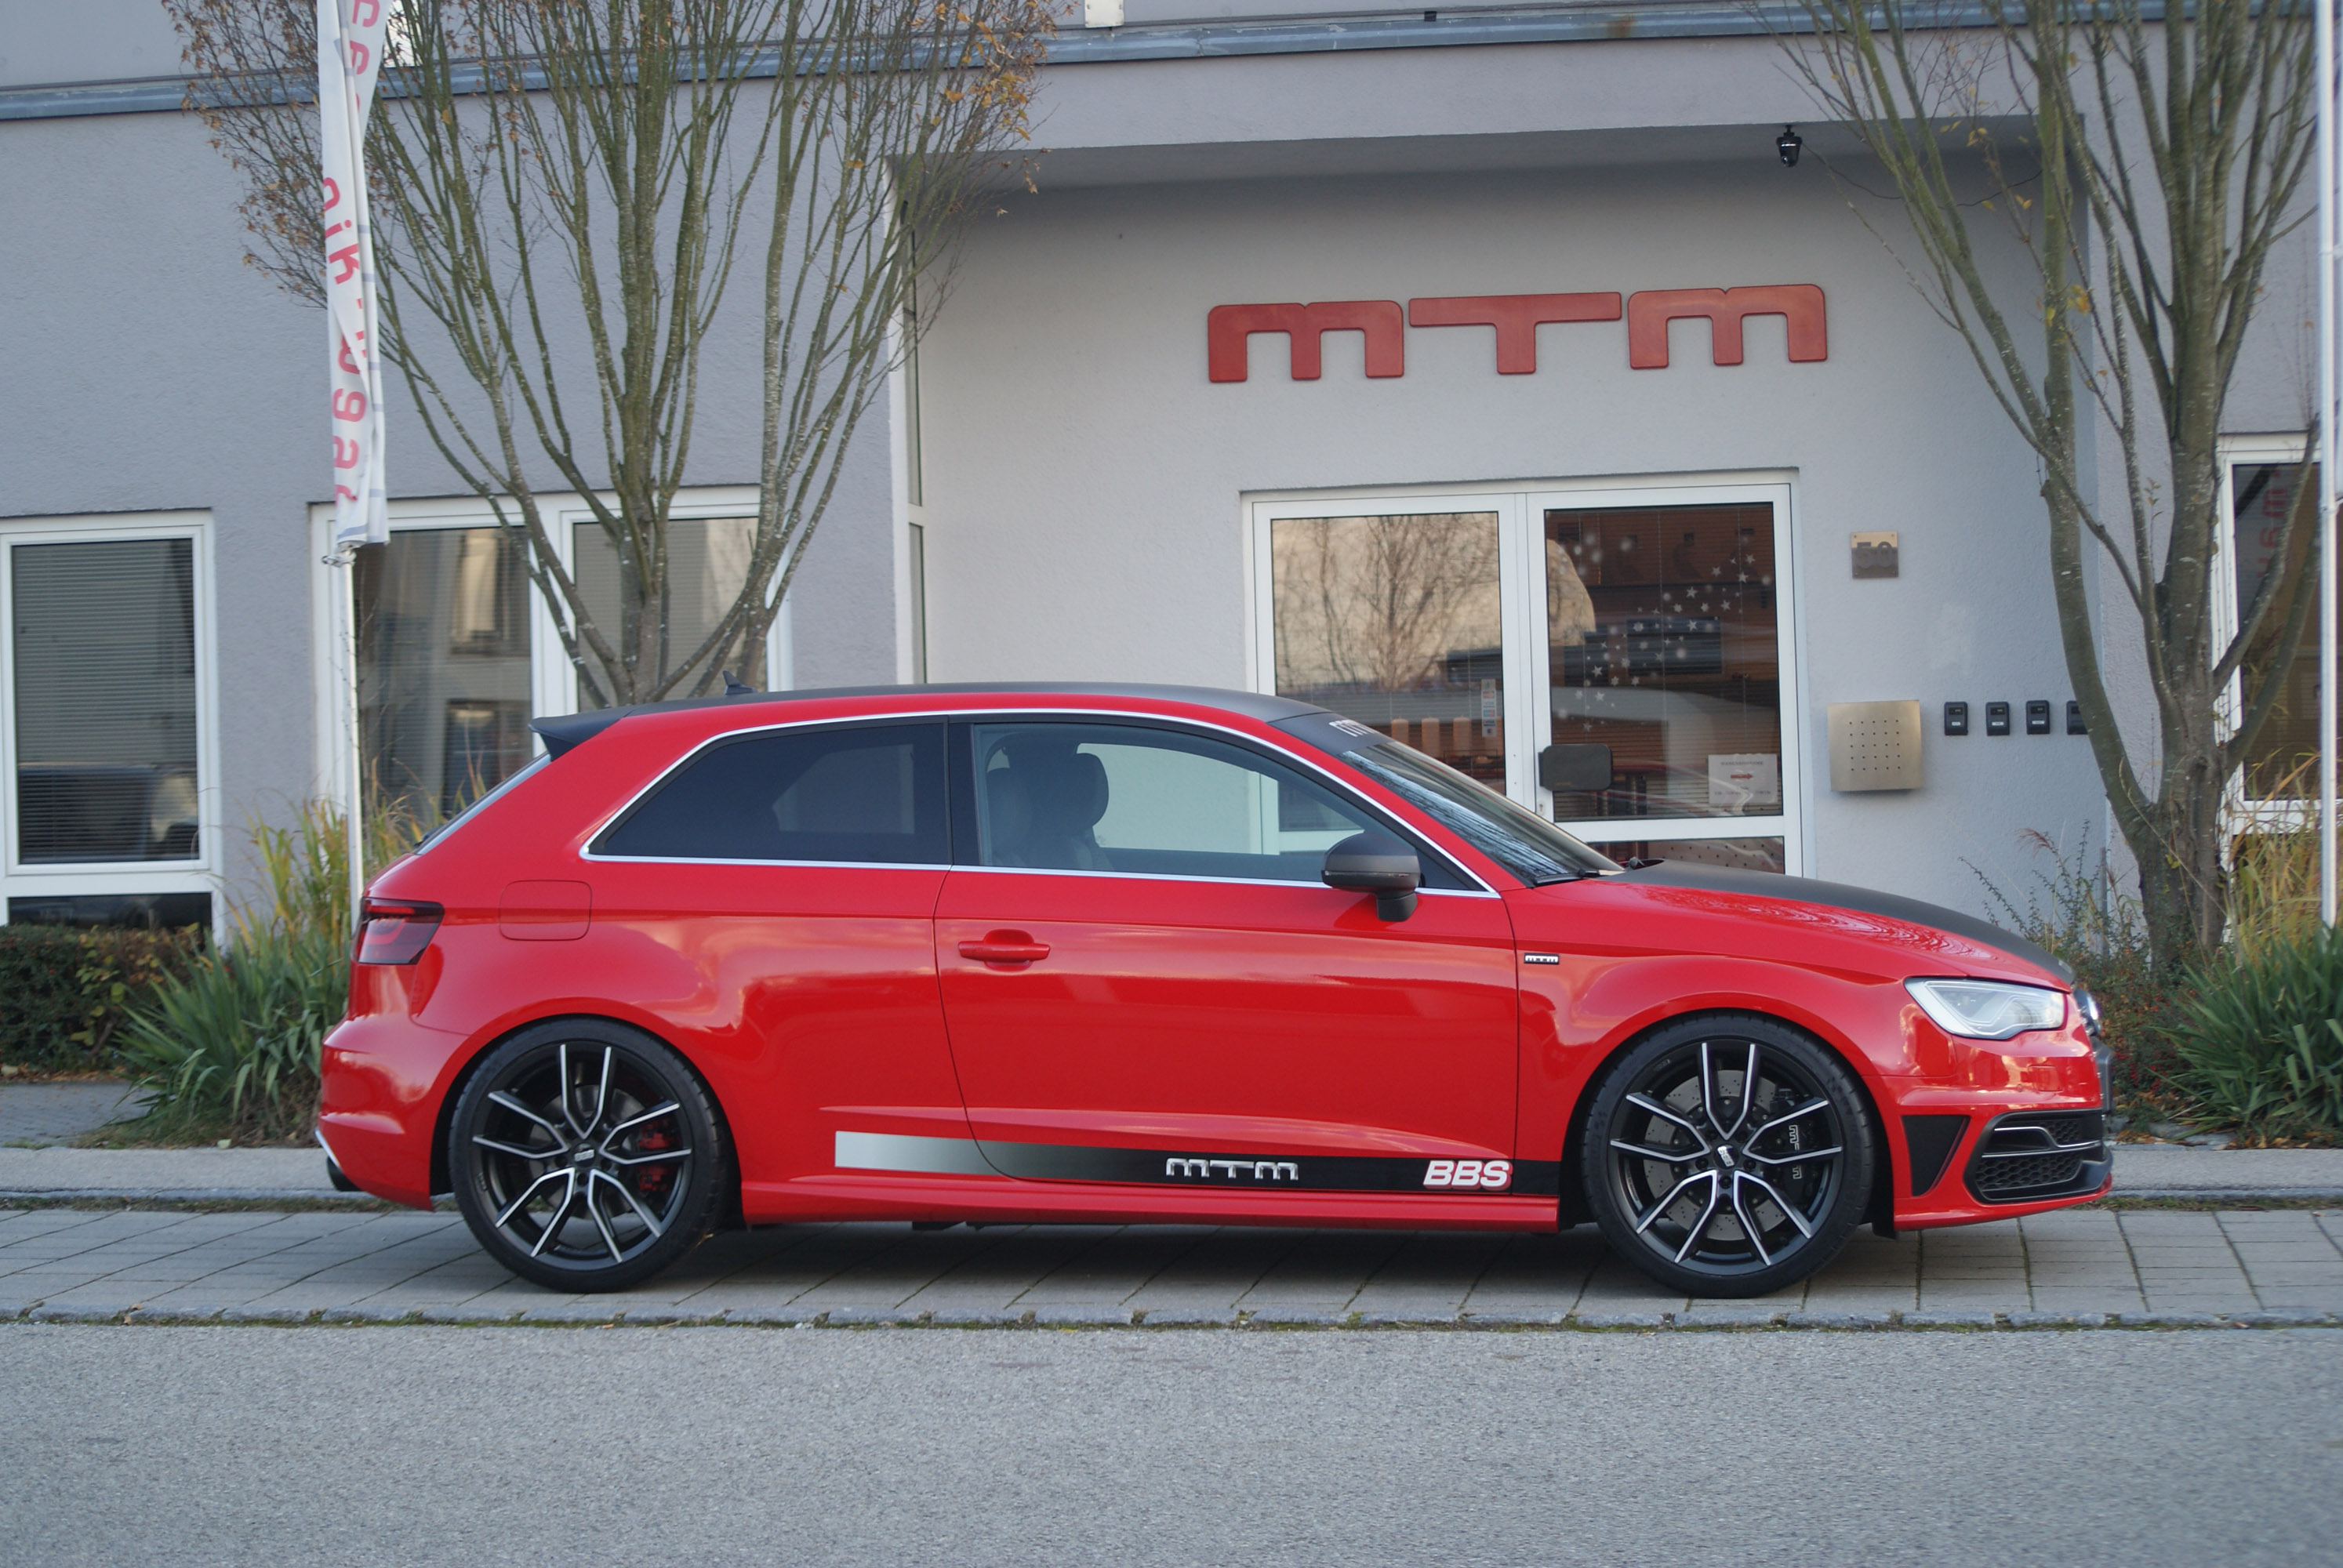 Mtm Audi S3 With Bbs Xa Wheels Picture 91709